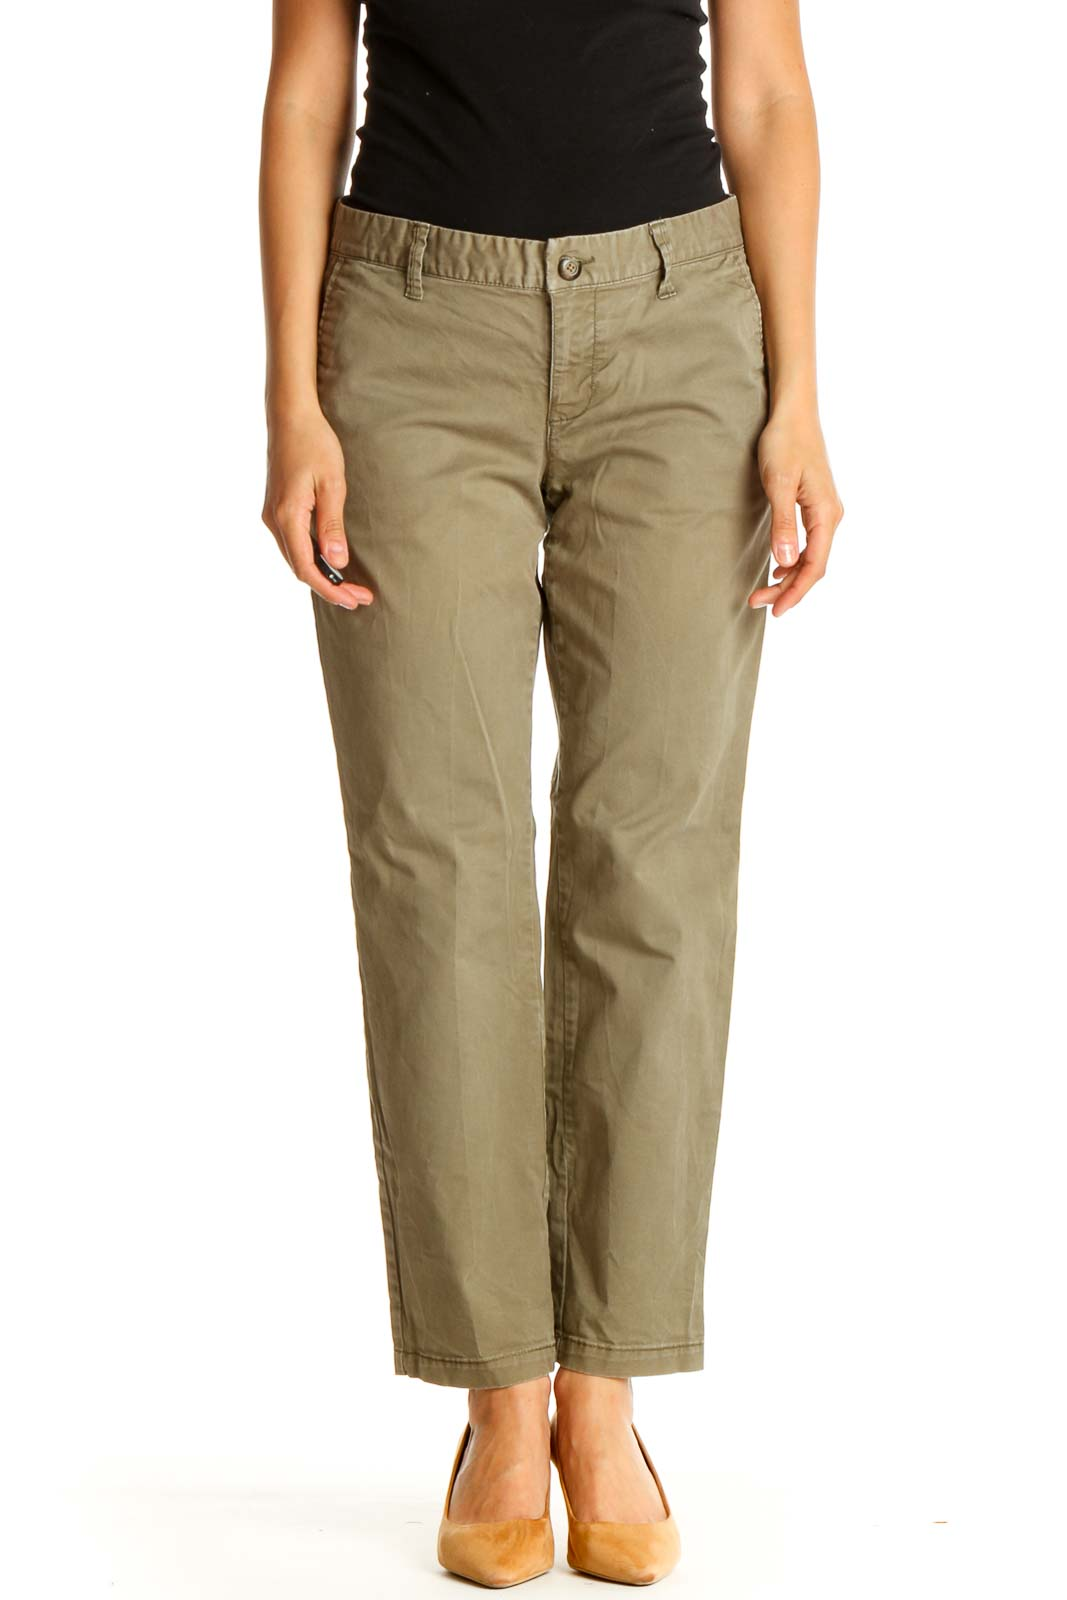 Green Solid All Day Wear Trousers Front